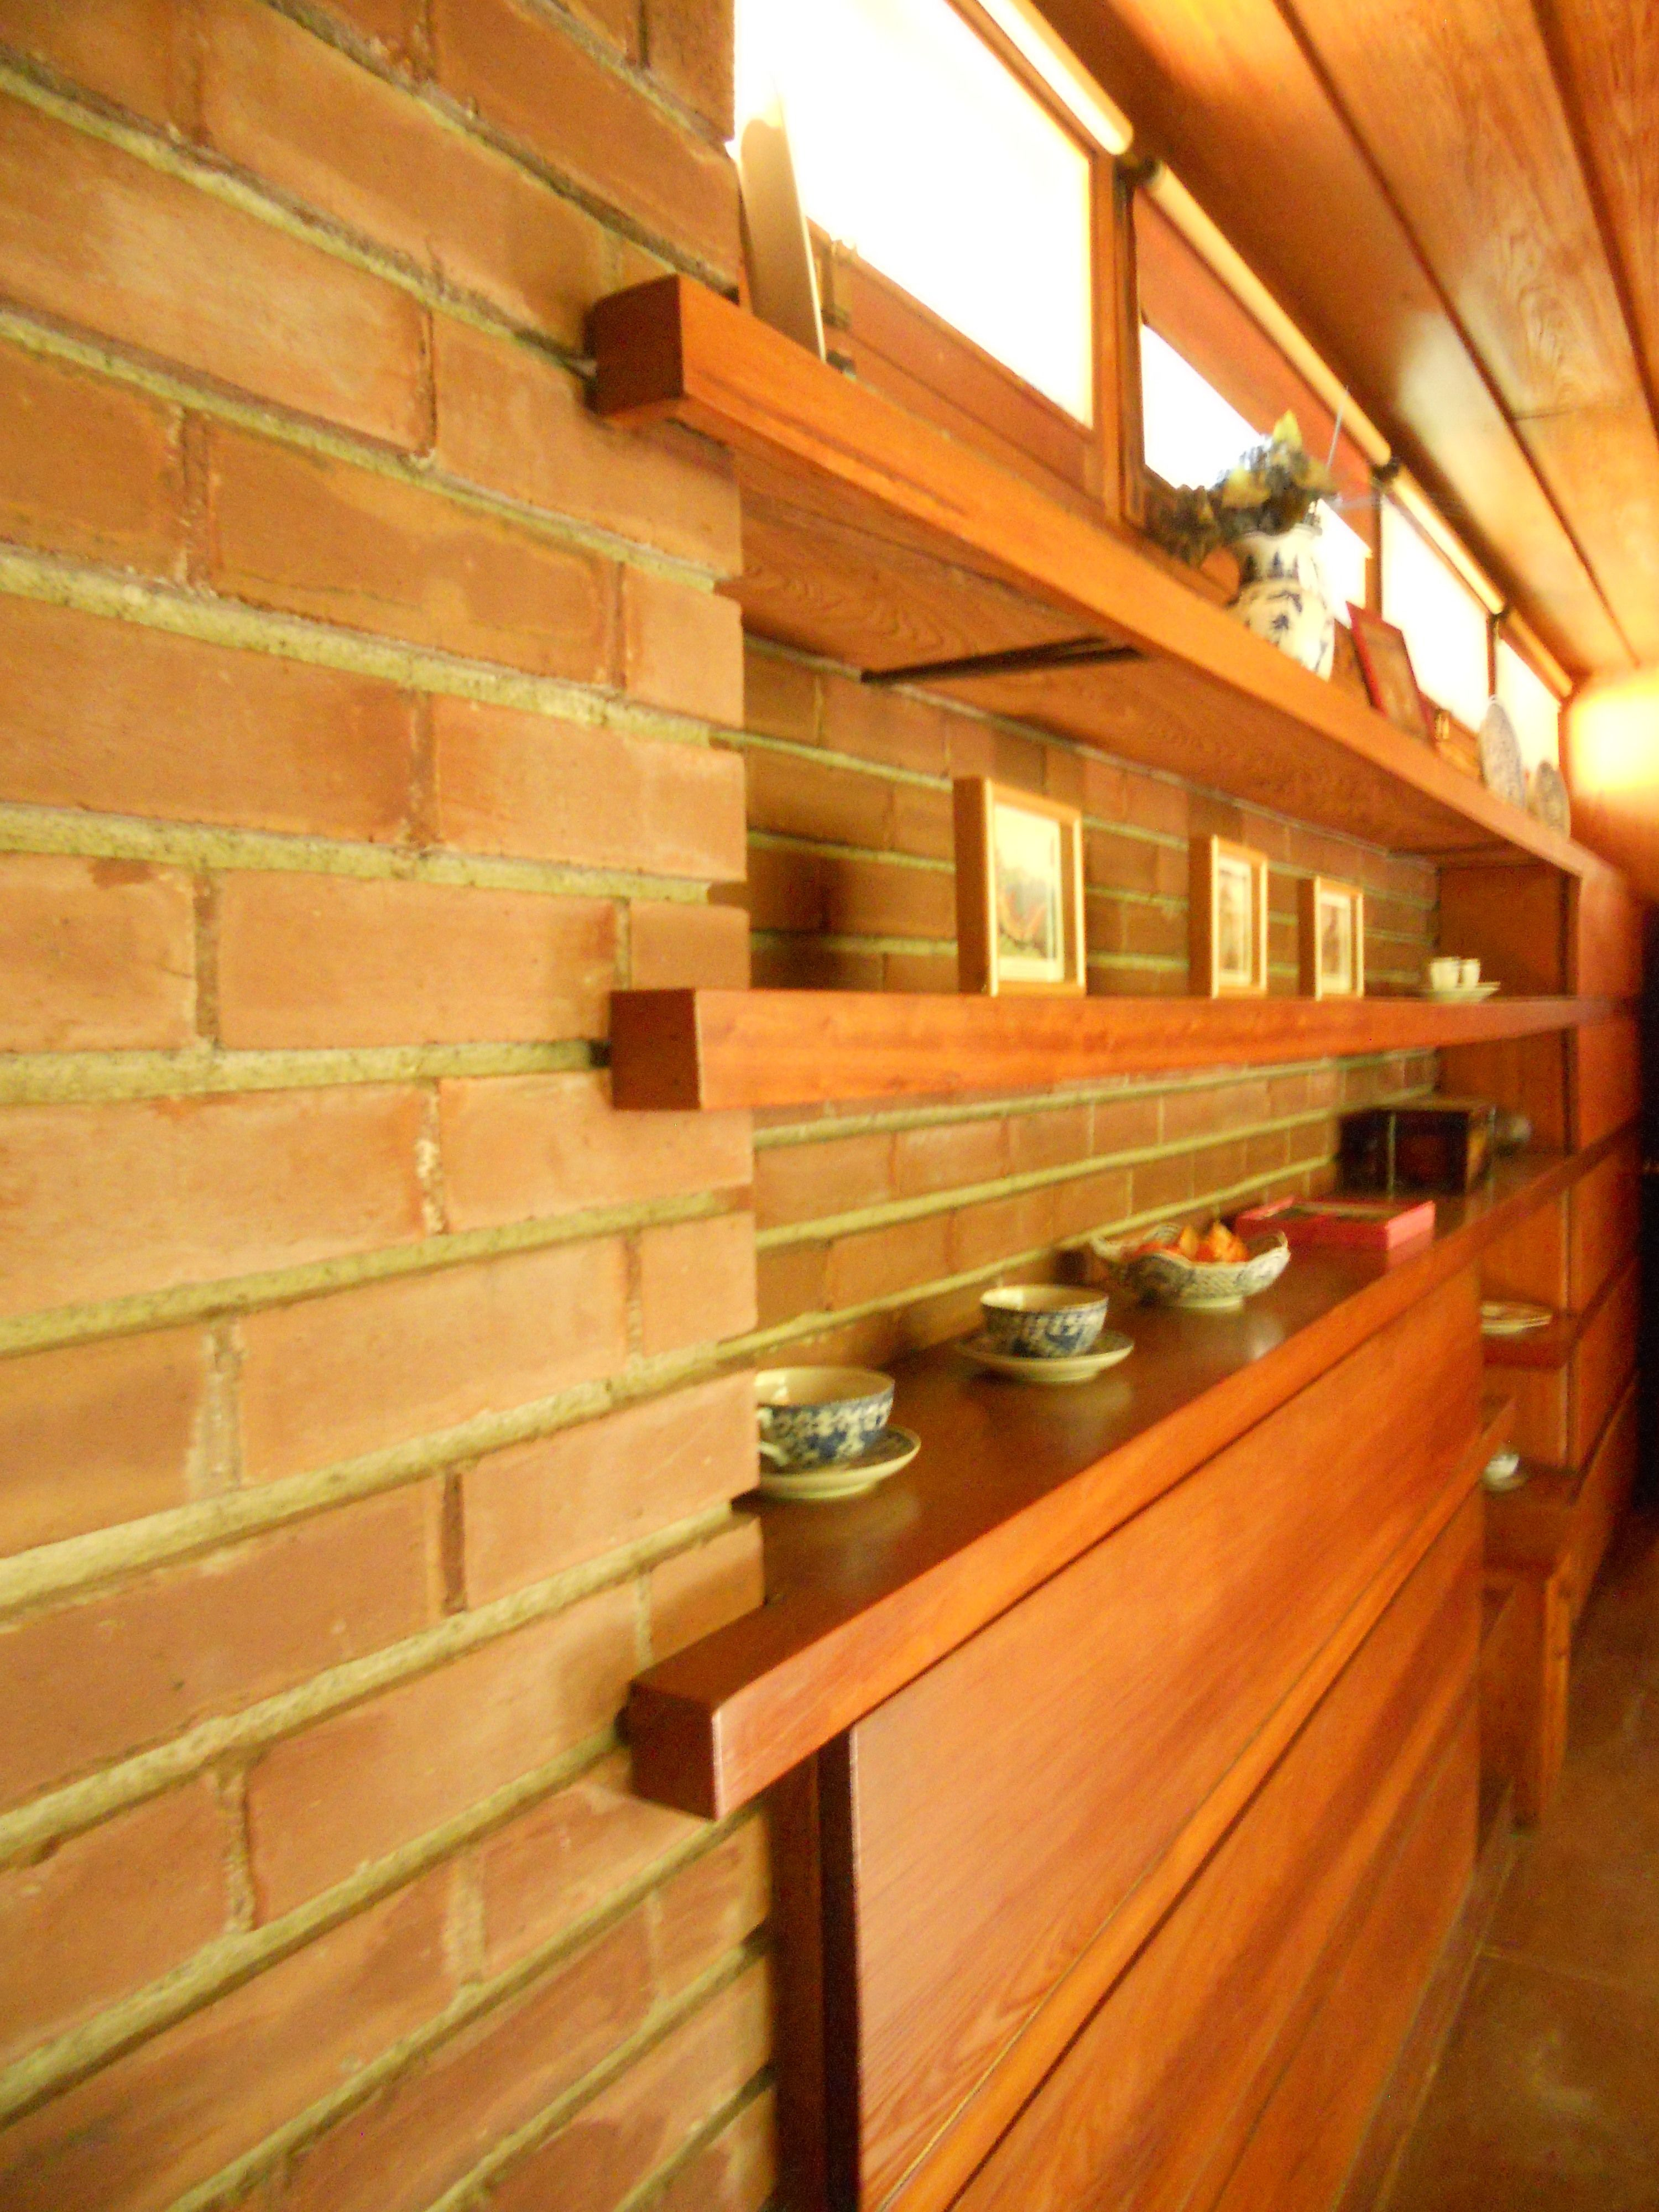 Gregor affleck house flw usonian style bloomfield hills - House of bedrooms bloomfield hills mi ...